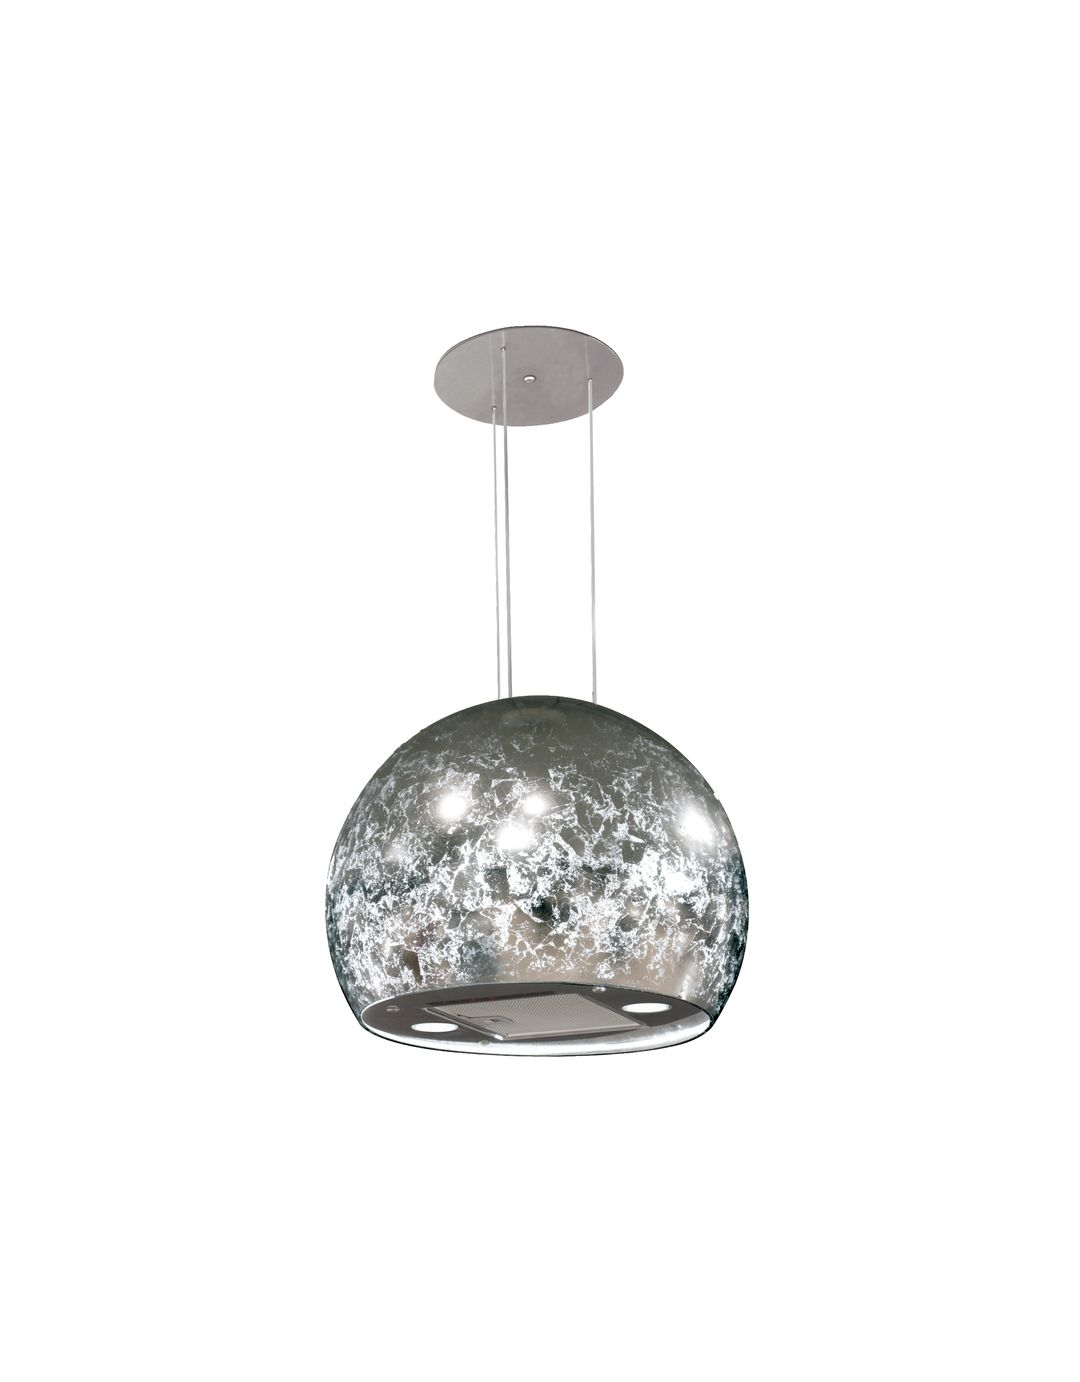 50cm chandelier island cooker hood silver finish spherical cooker 50cm chandelier island cooker hood silver finish spherical cooker hood myappliances arubaitofo Choice Image